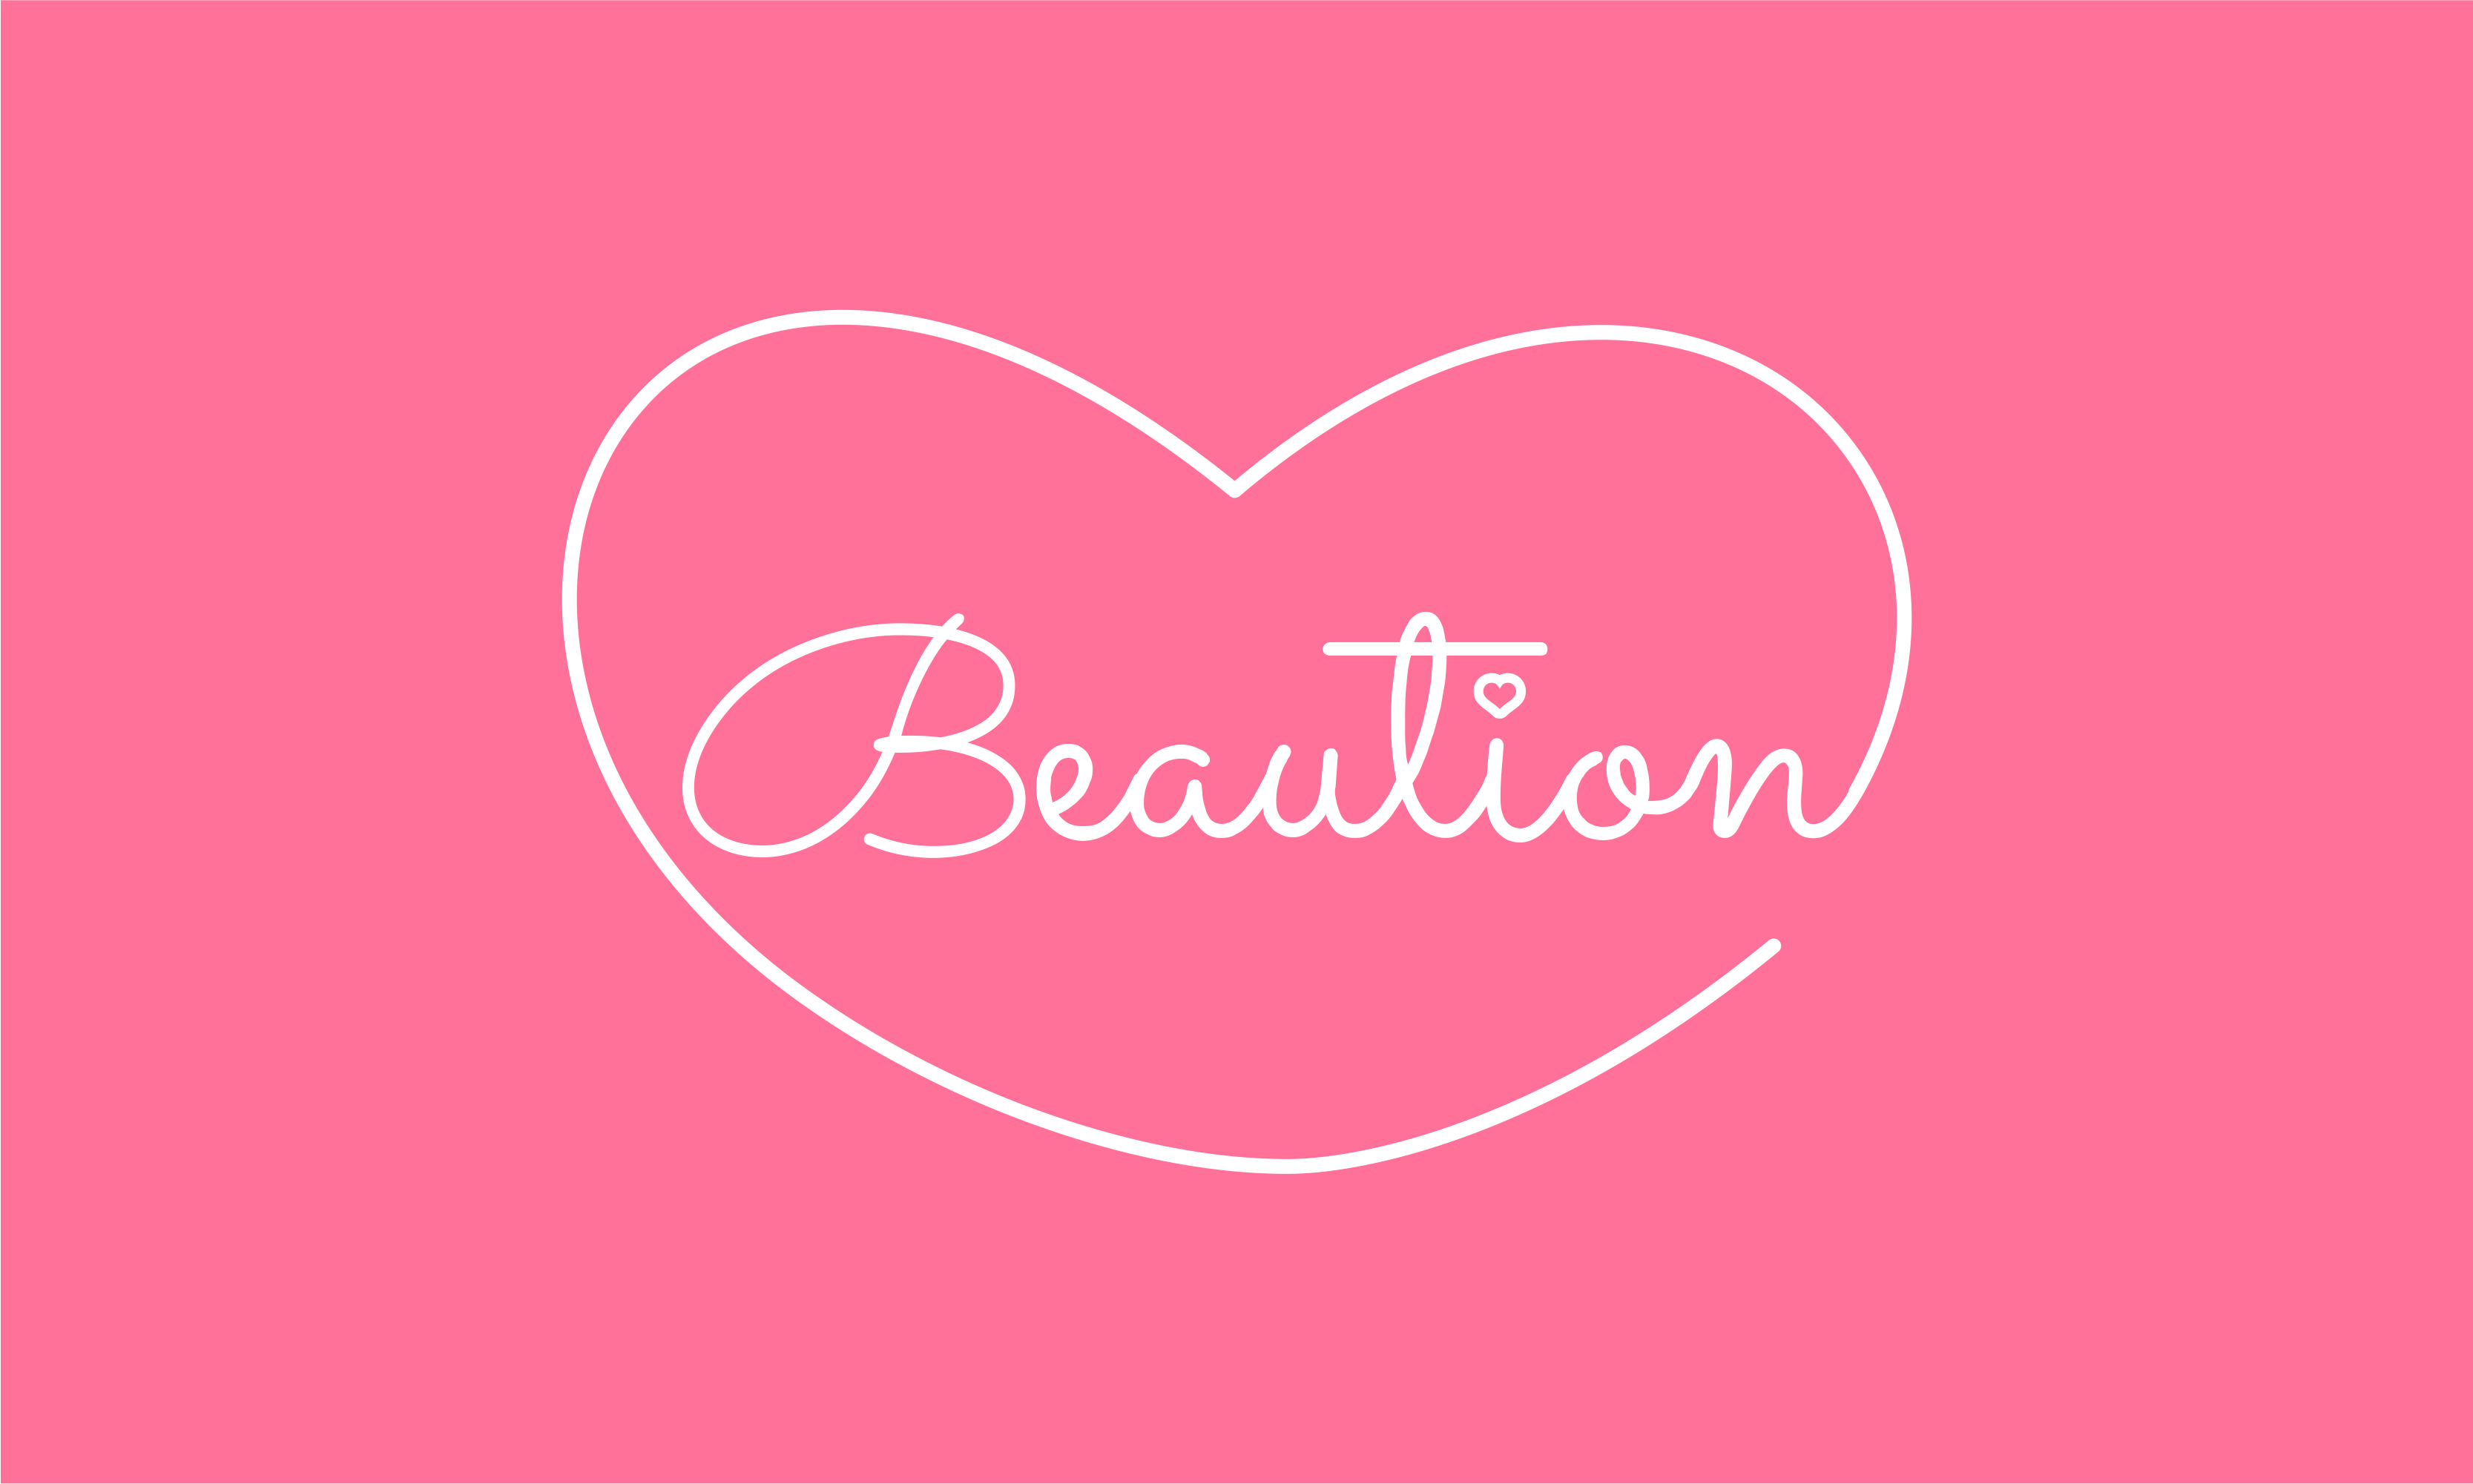 beaution.com